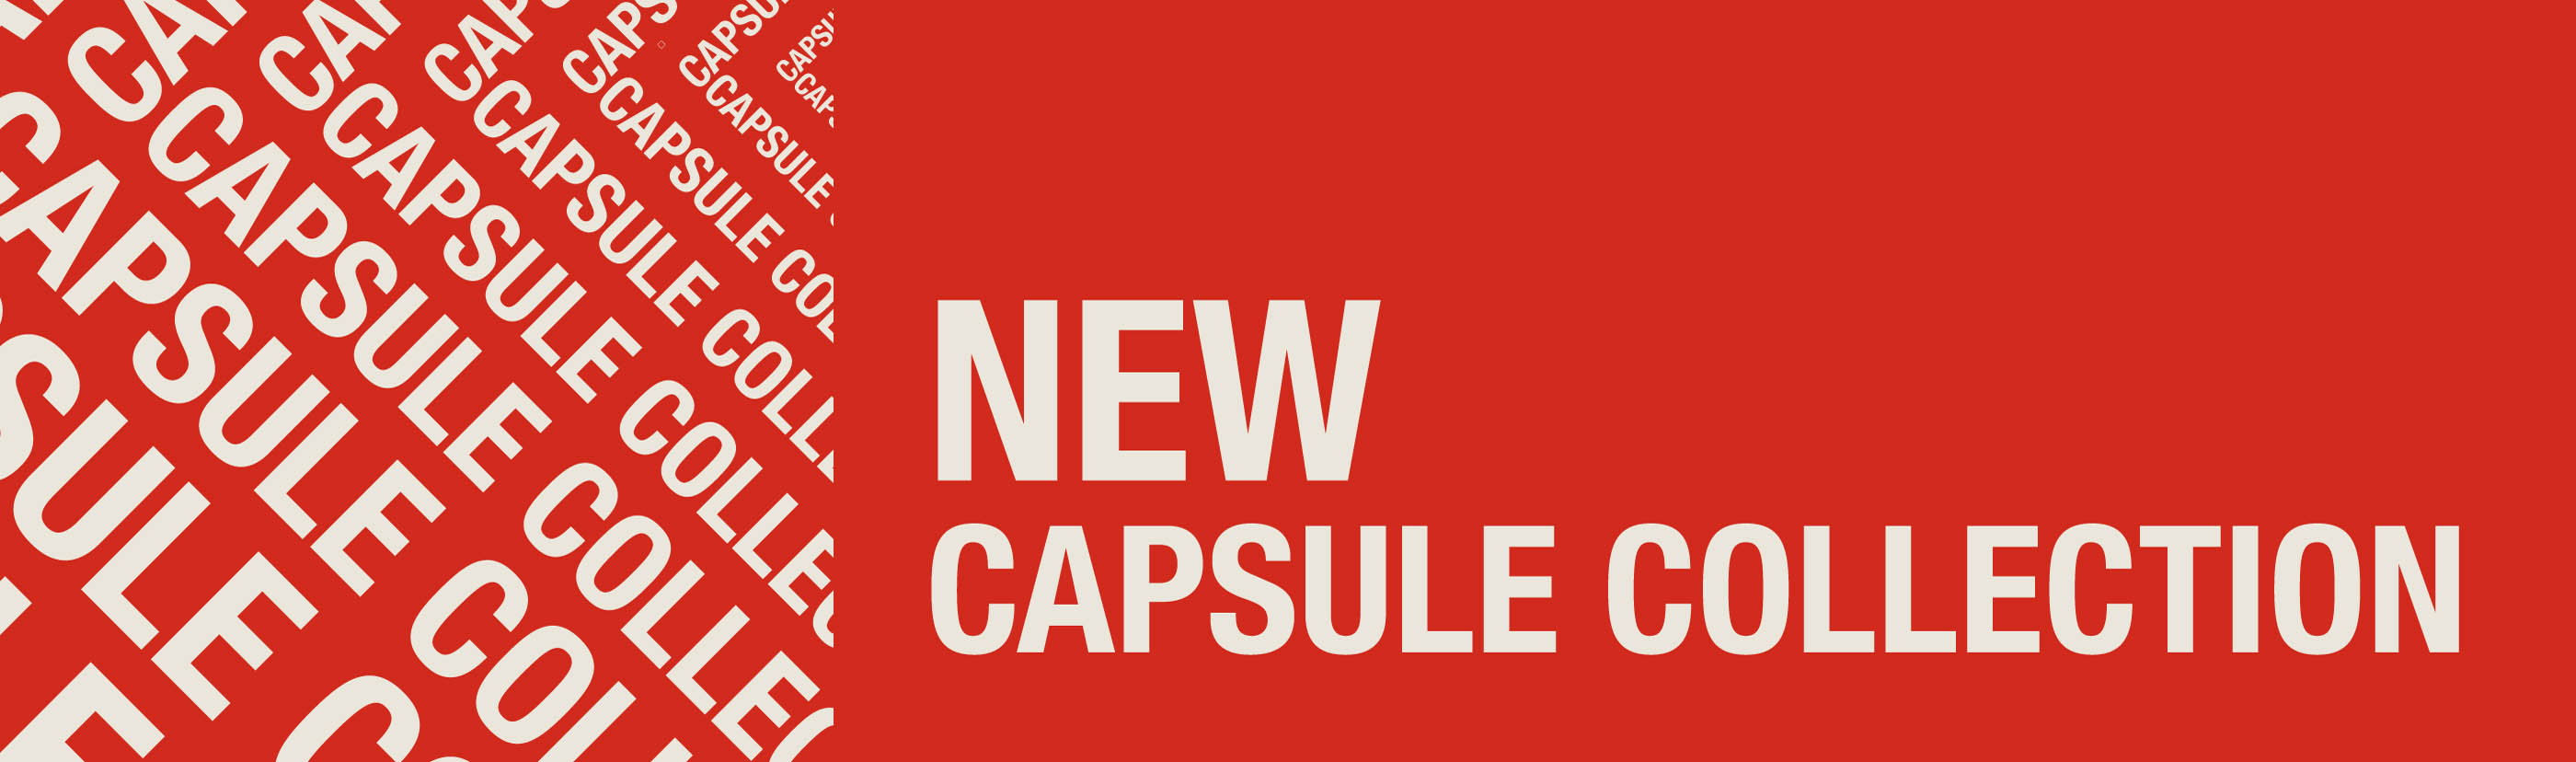 Capsule collection - OUT NOW